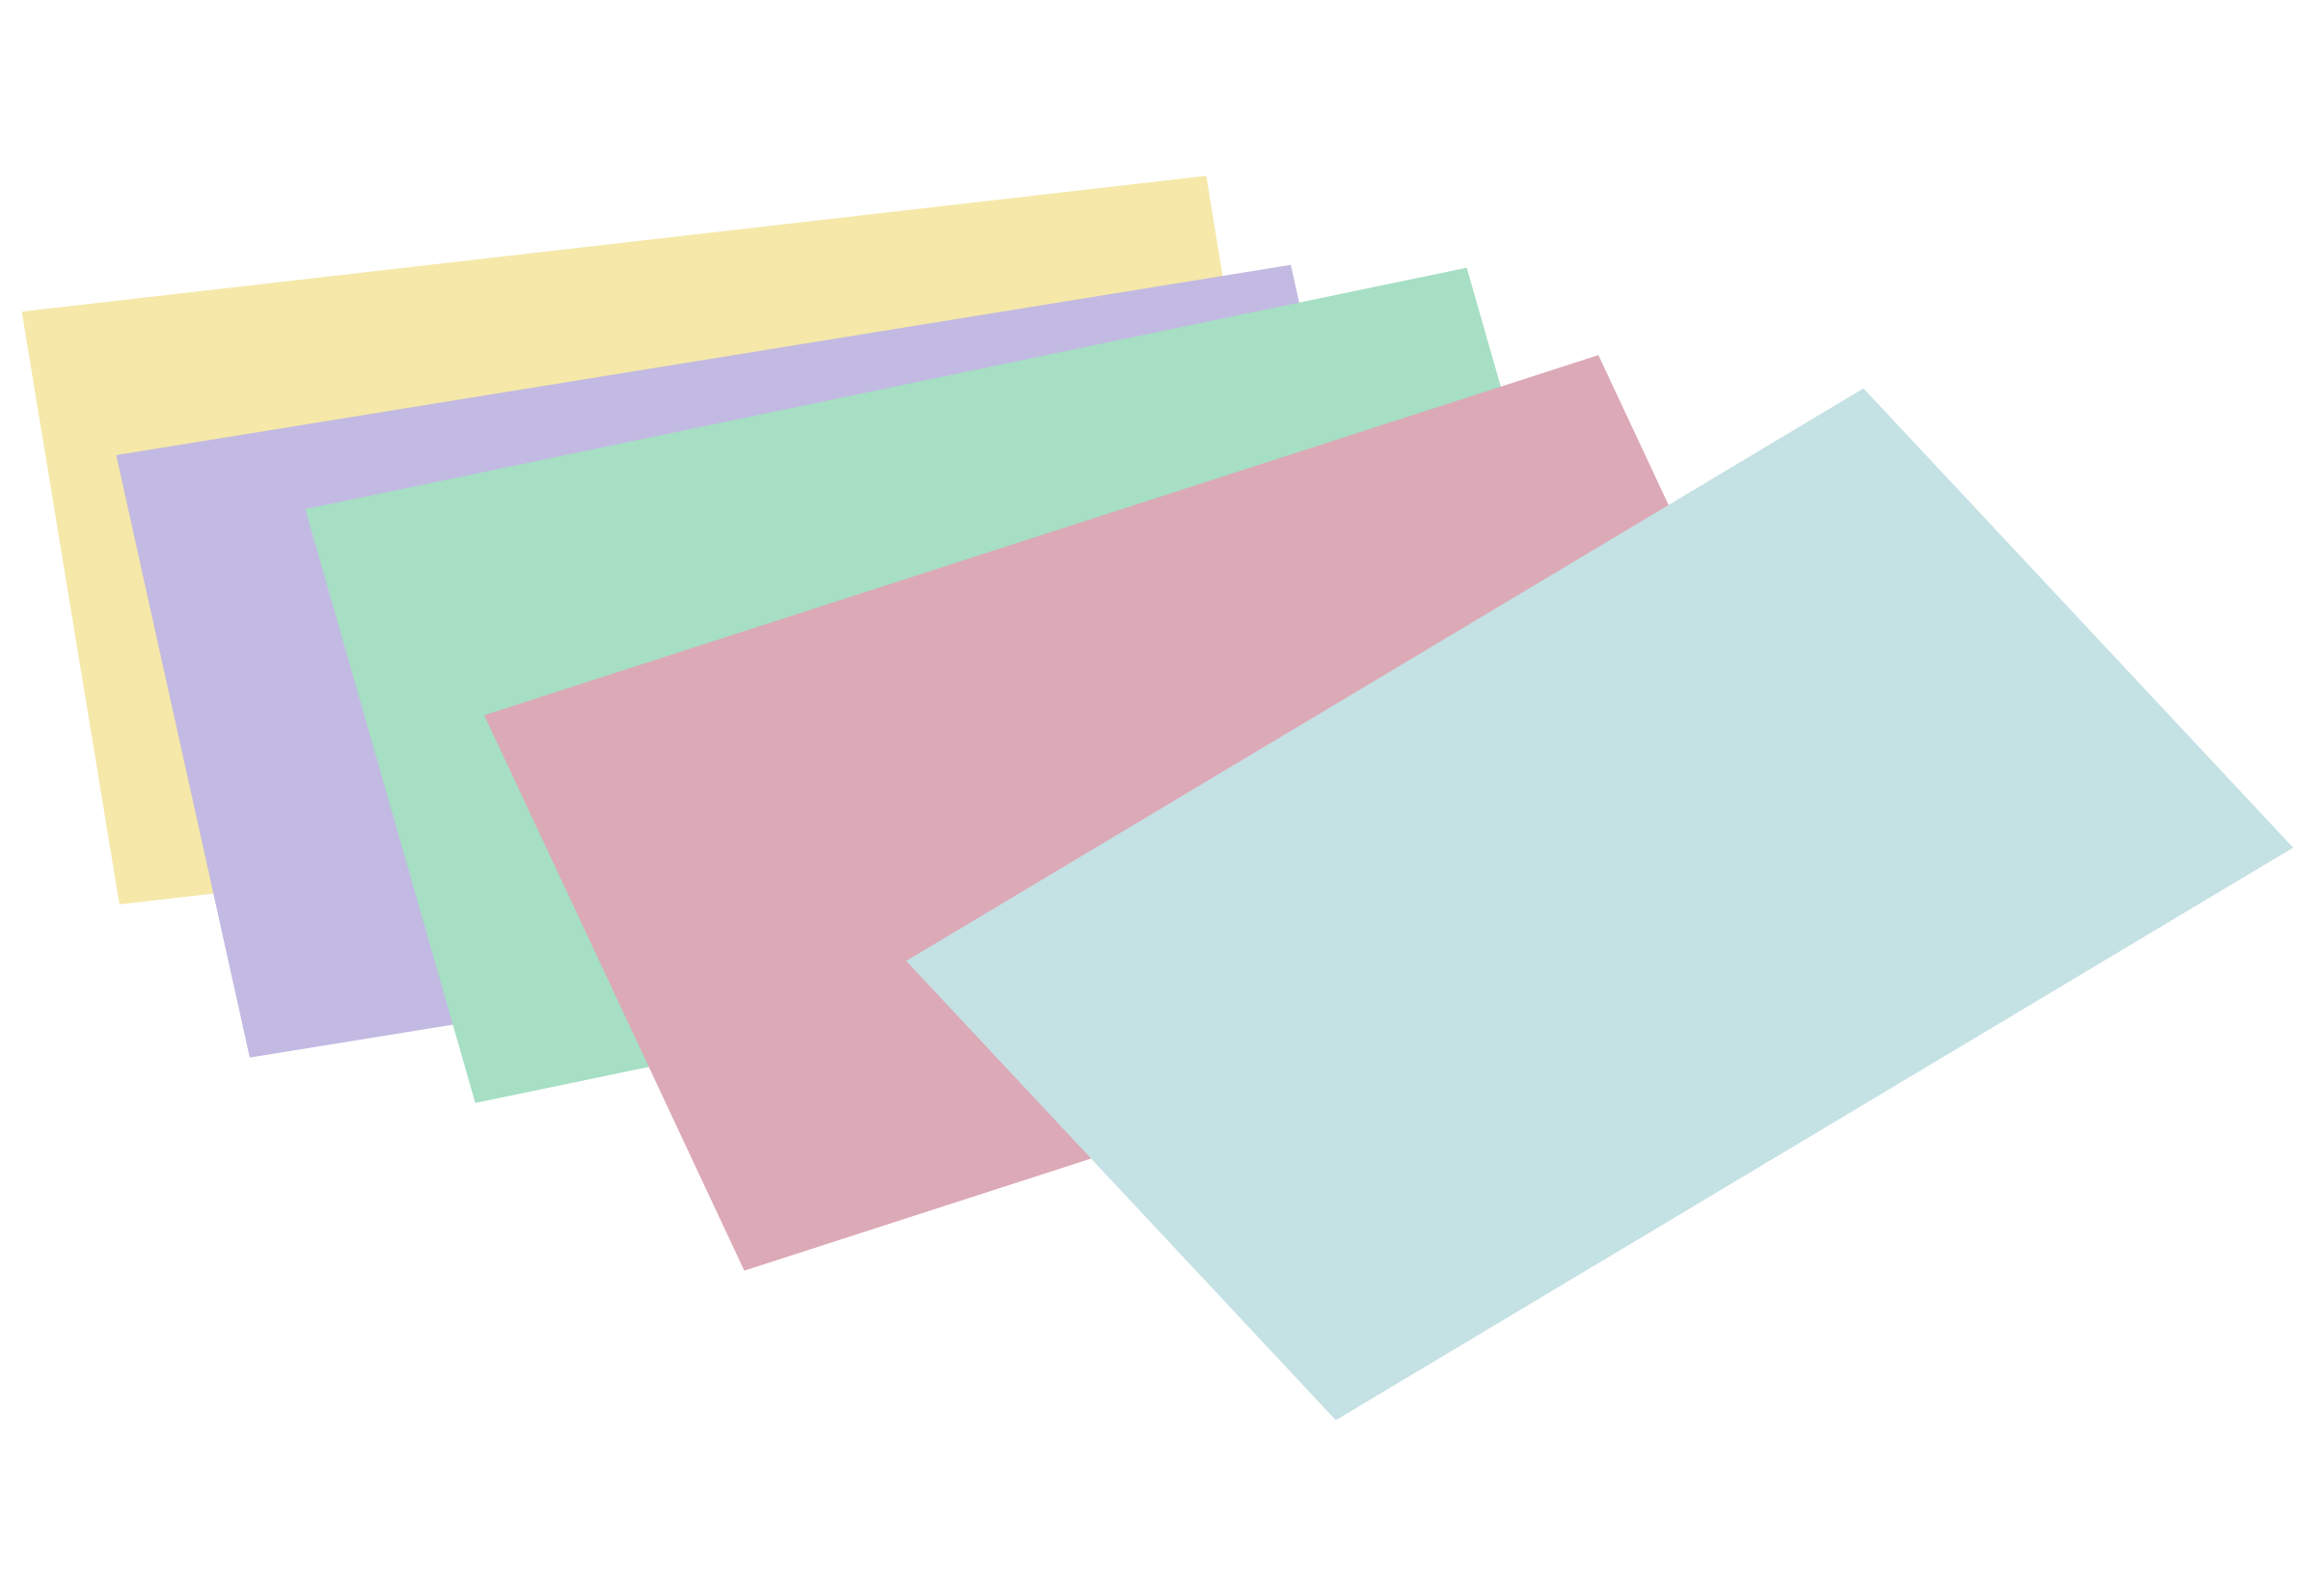 Card clipart note card. Stack of unlined colored